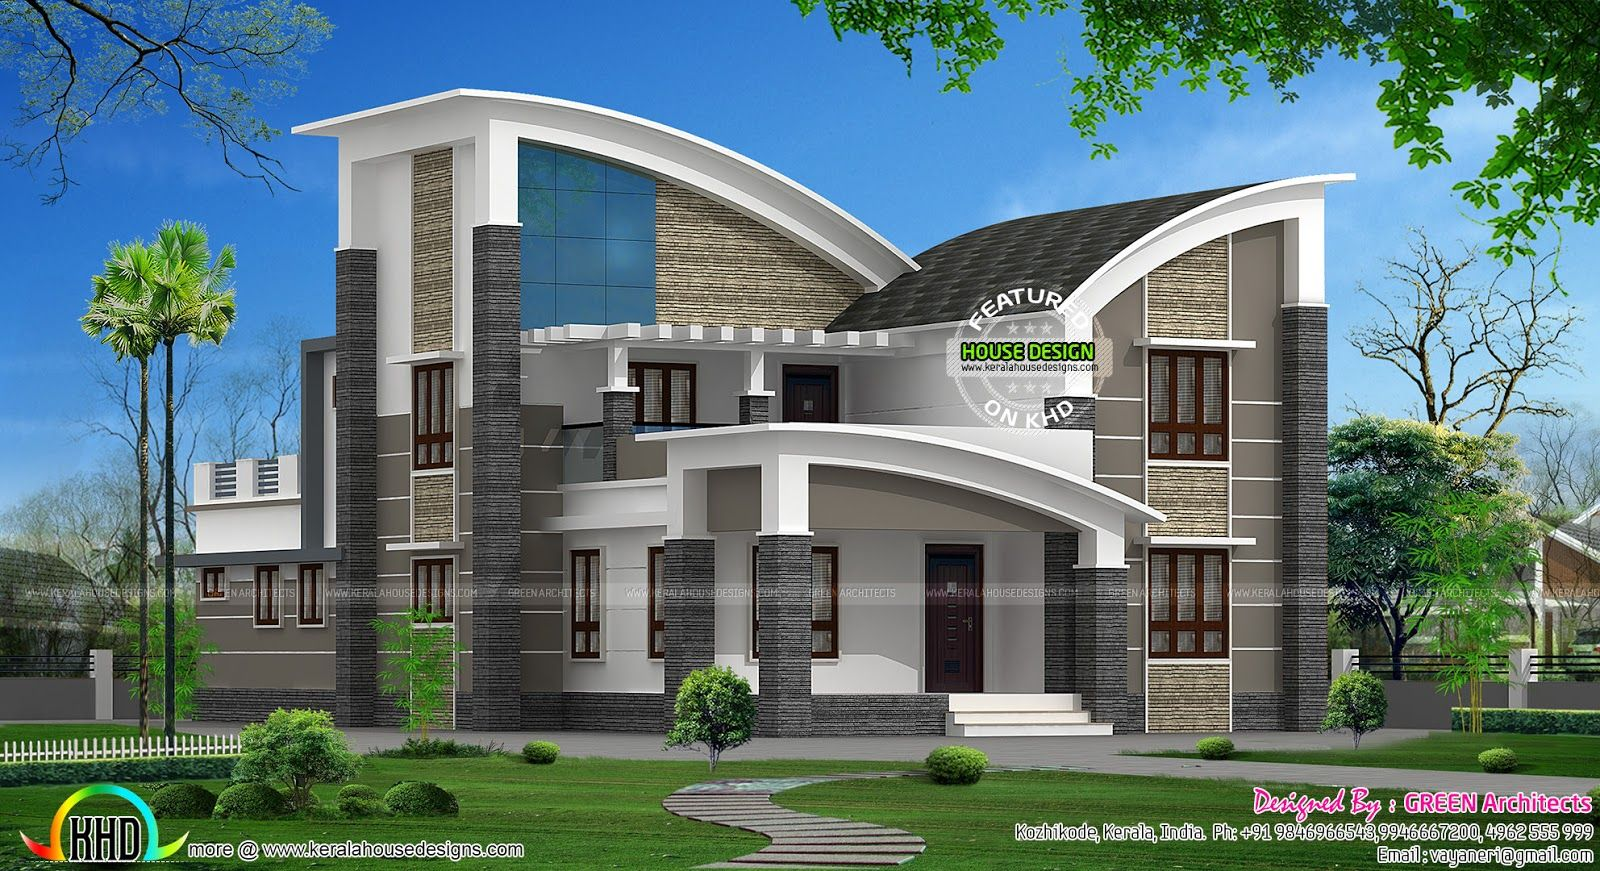 Modern style curved roof villa home inspiration for Modern house styles